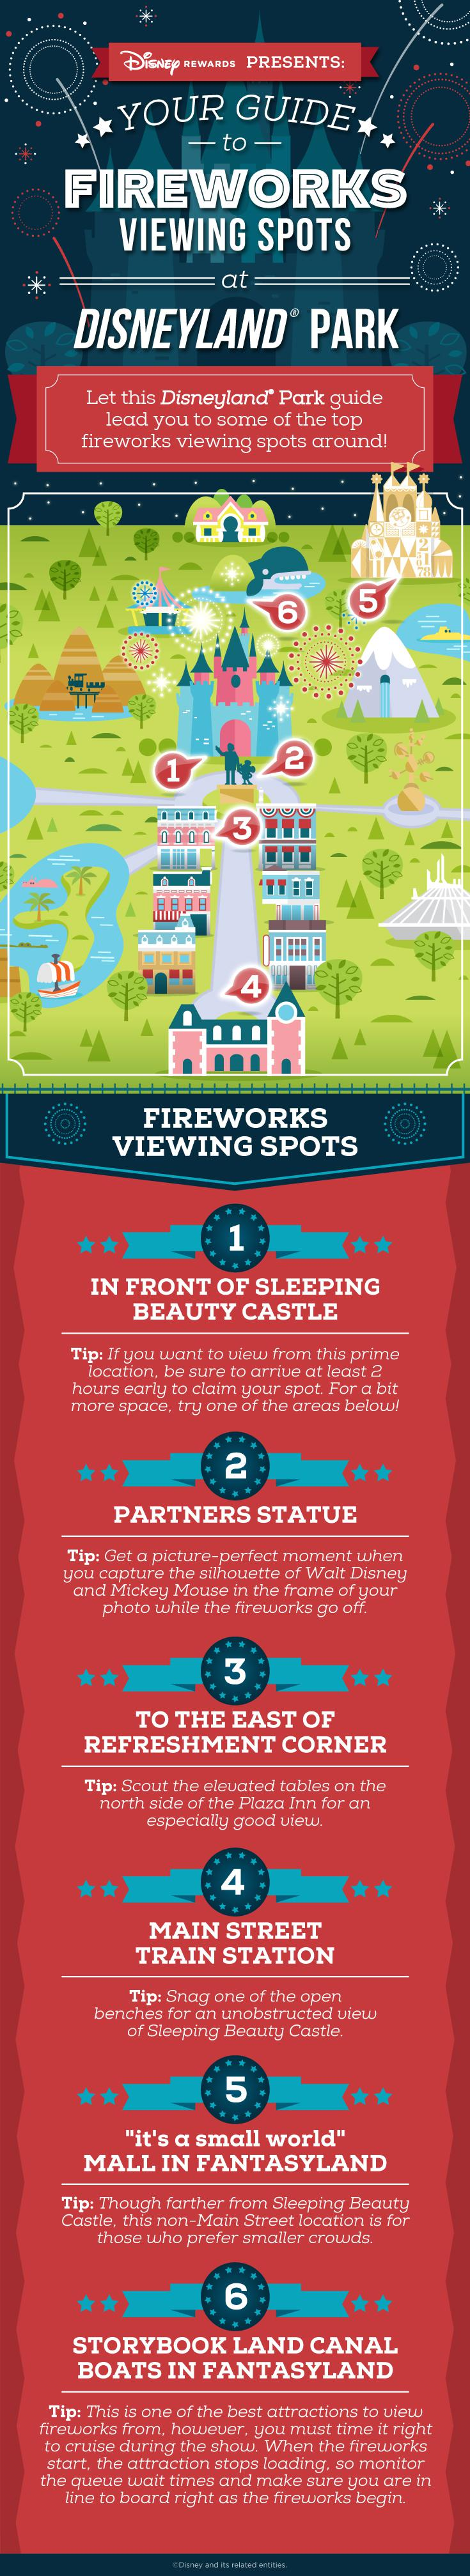 Disneyland fireworks viewing spots